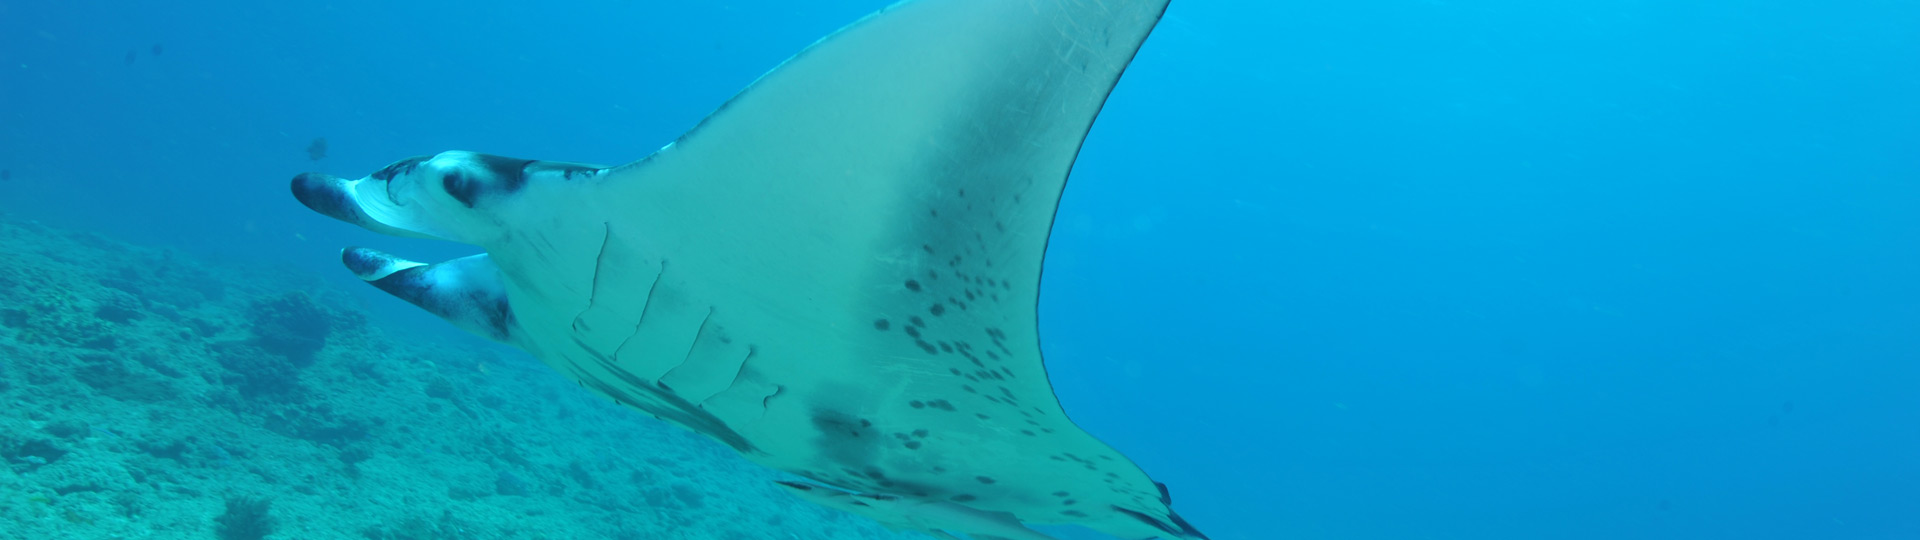 Manta ray in Boulari, New Caledonia